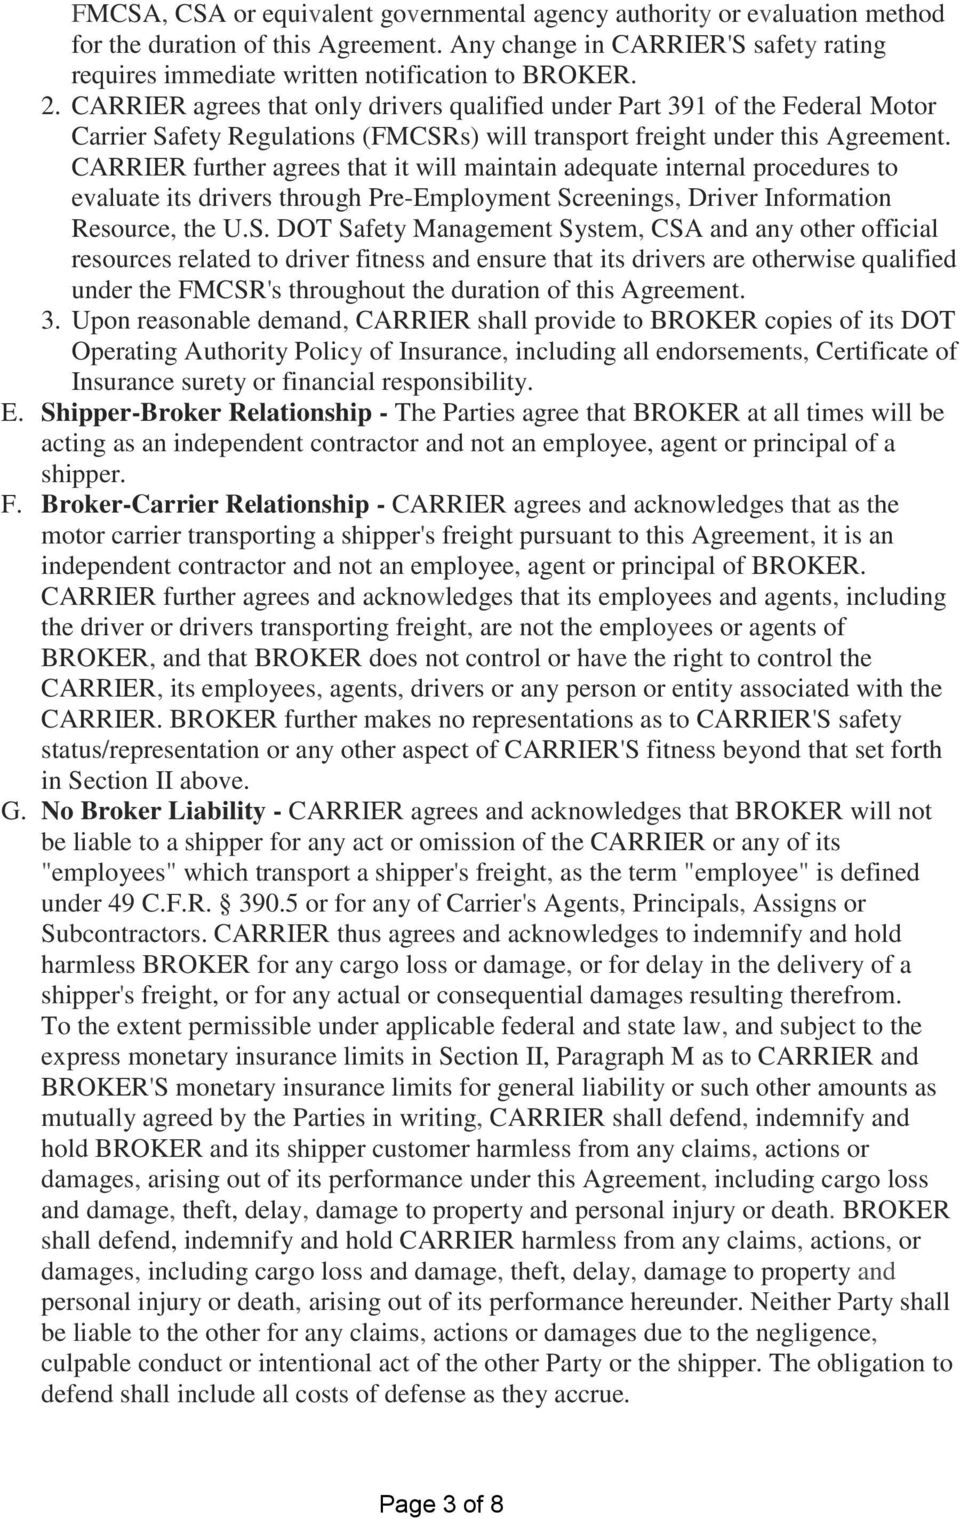 CARRIER further agrees that it will maintain adequate internal procedures to evaluate its drivers through Pre-Employment Sc